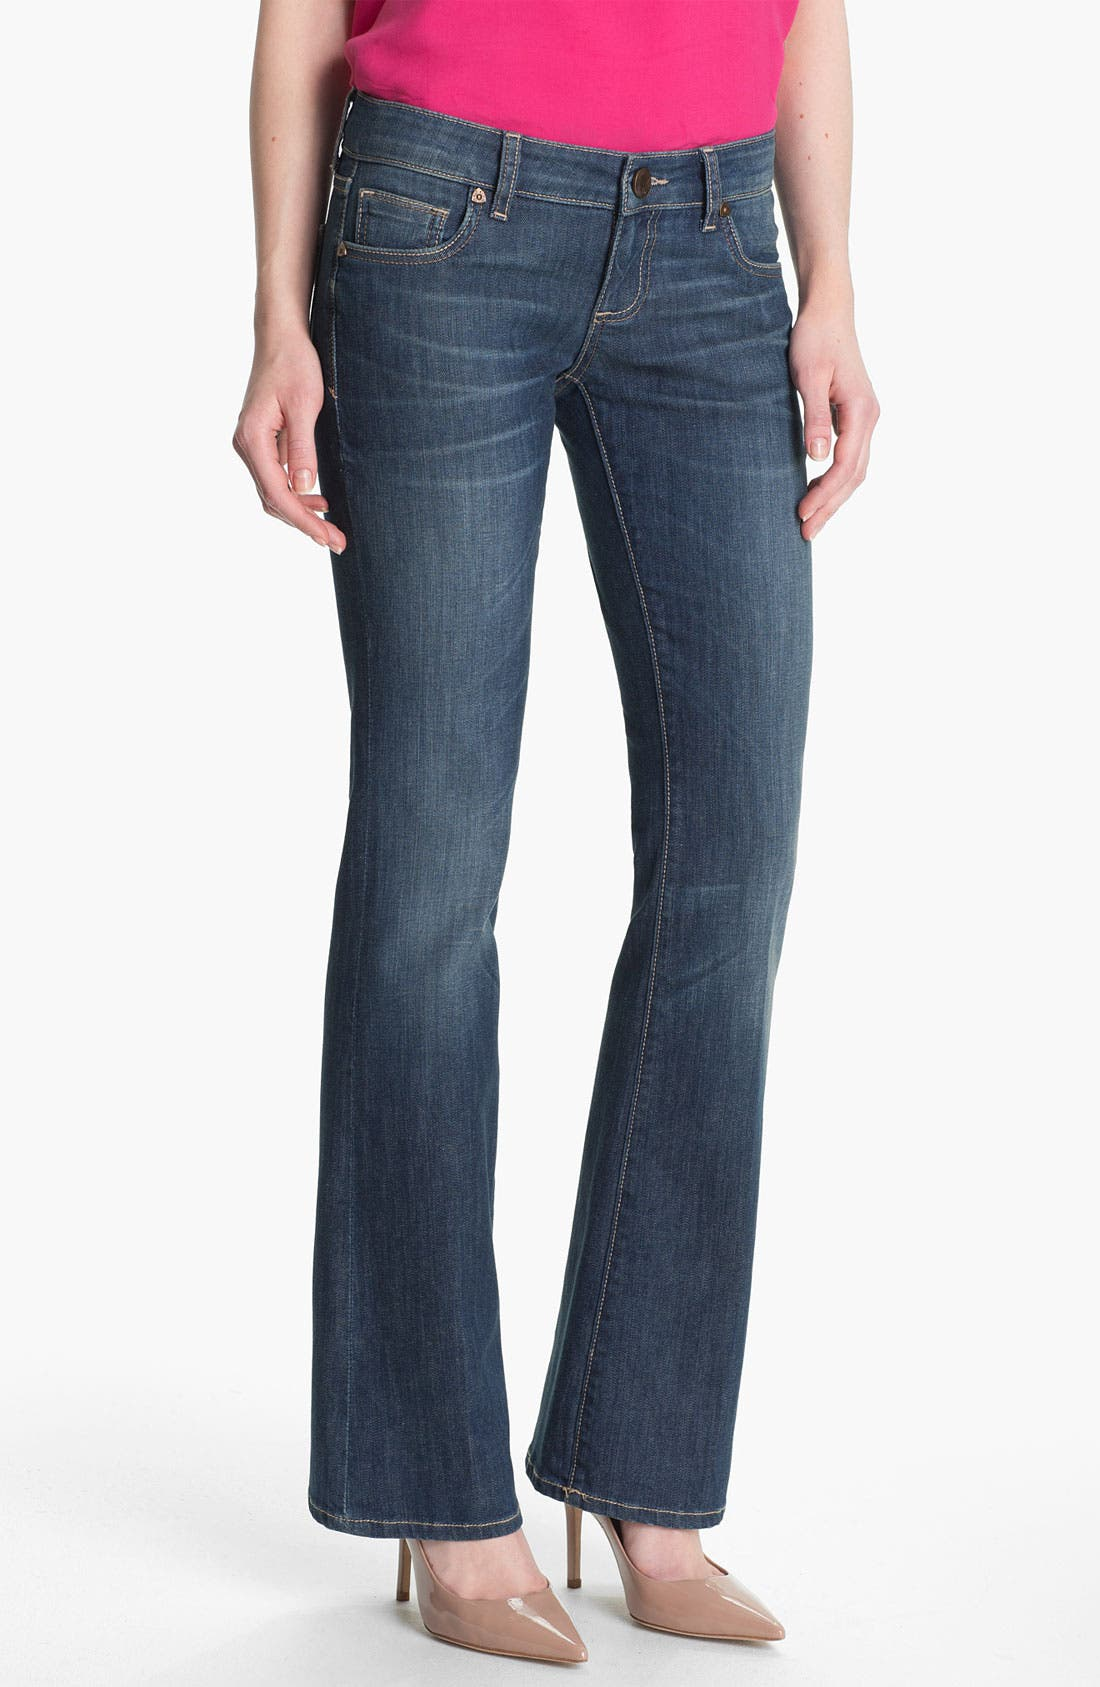 Alternate Image 1 Selected - KUT from the Kloth Baby Bootcut Jeans (Exceptional)